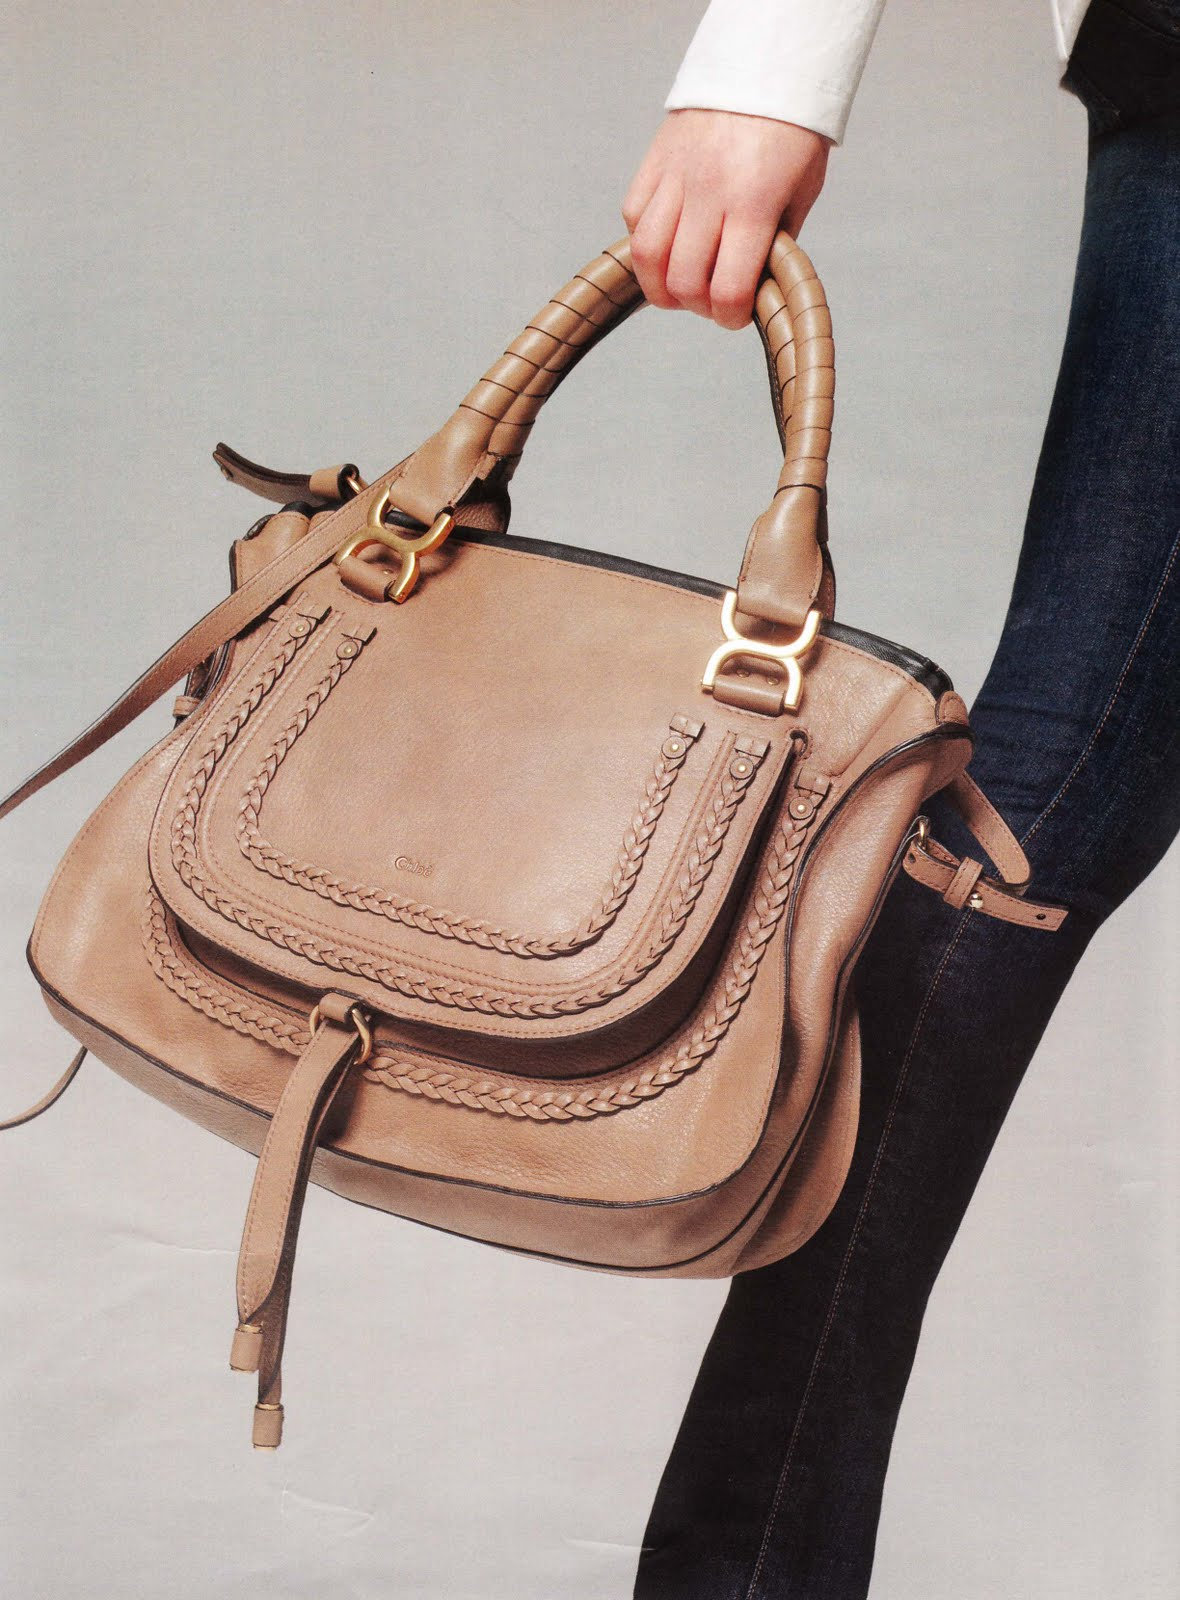 chloe saddle messenger bag - Untitled-7.jpg